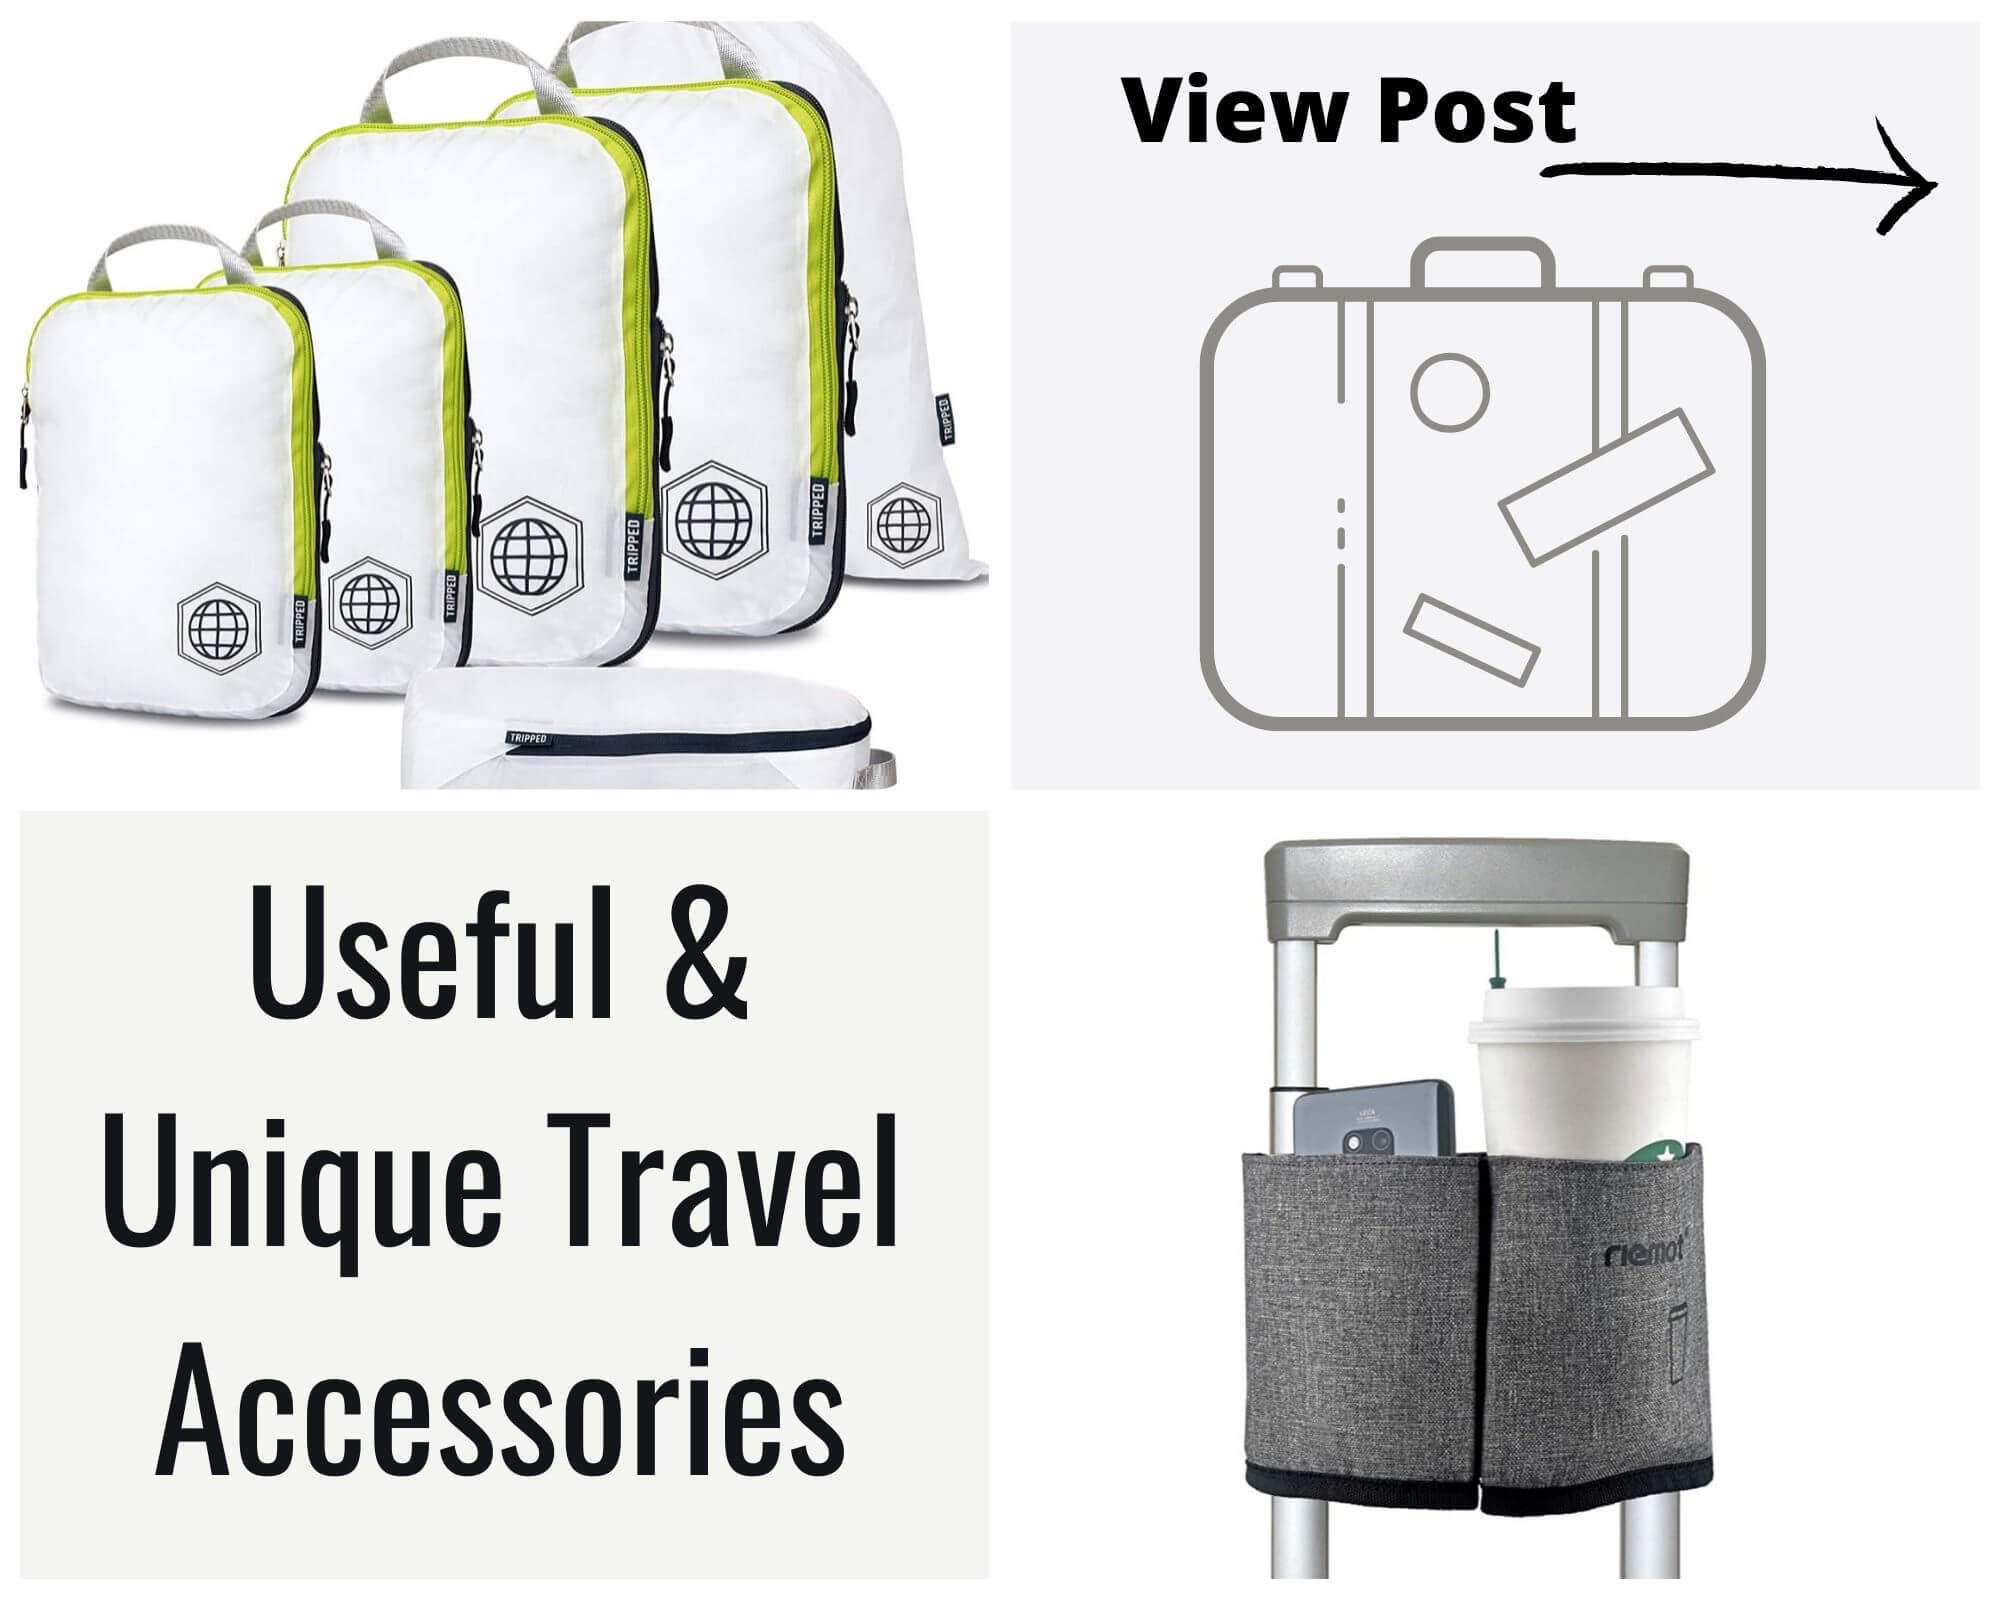 Useful and Unique Travel Accessories